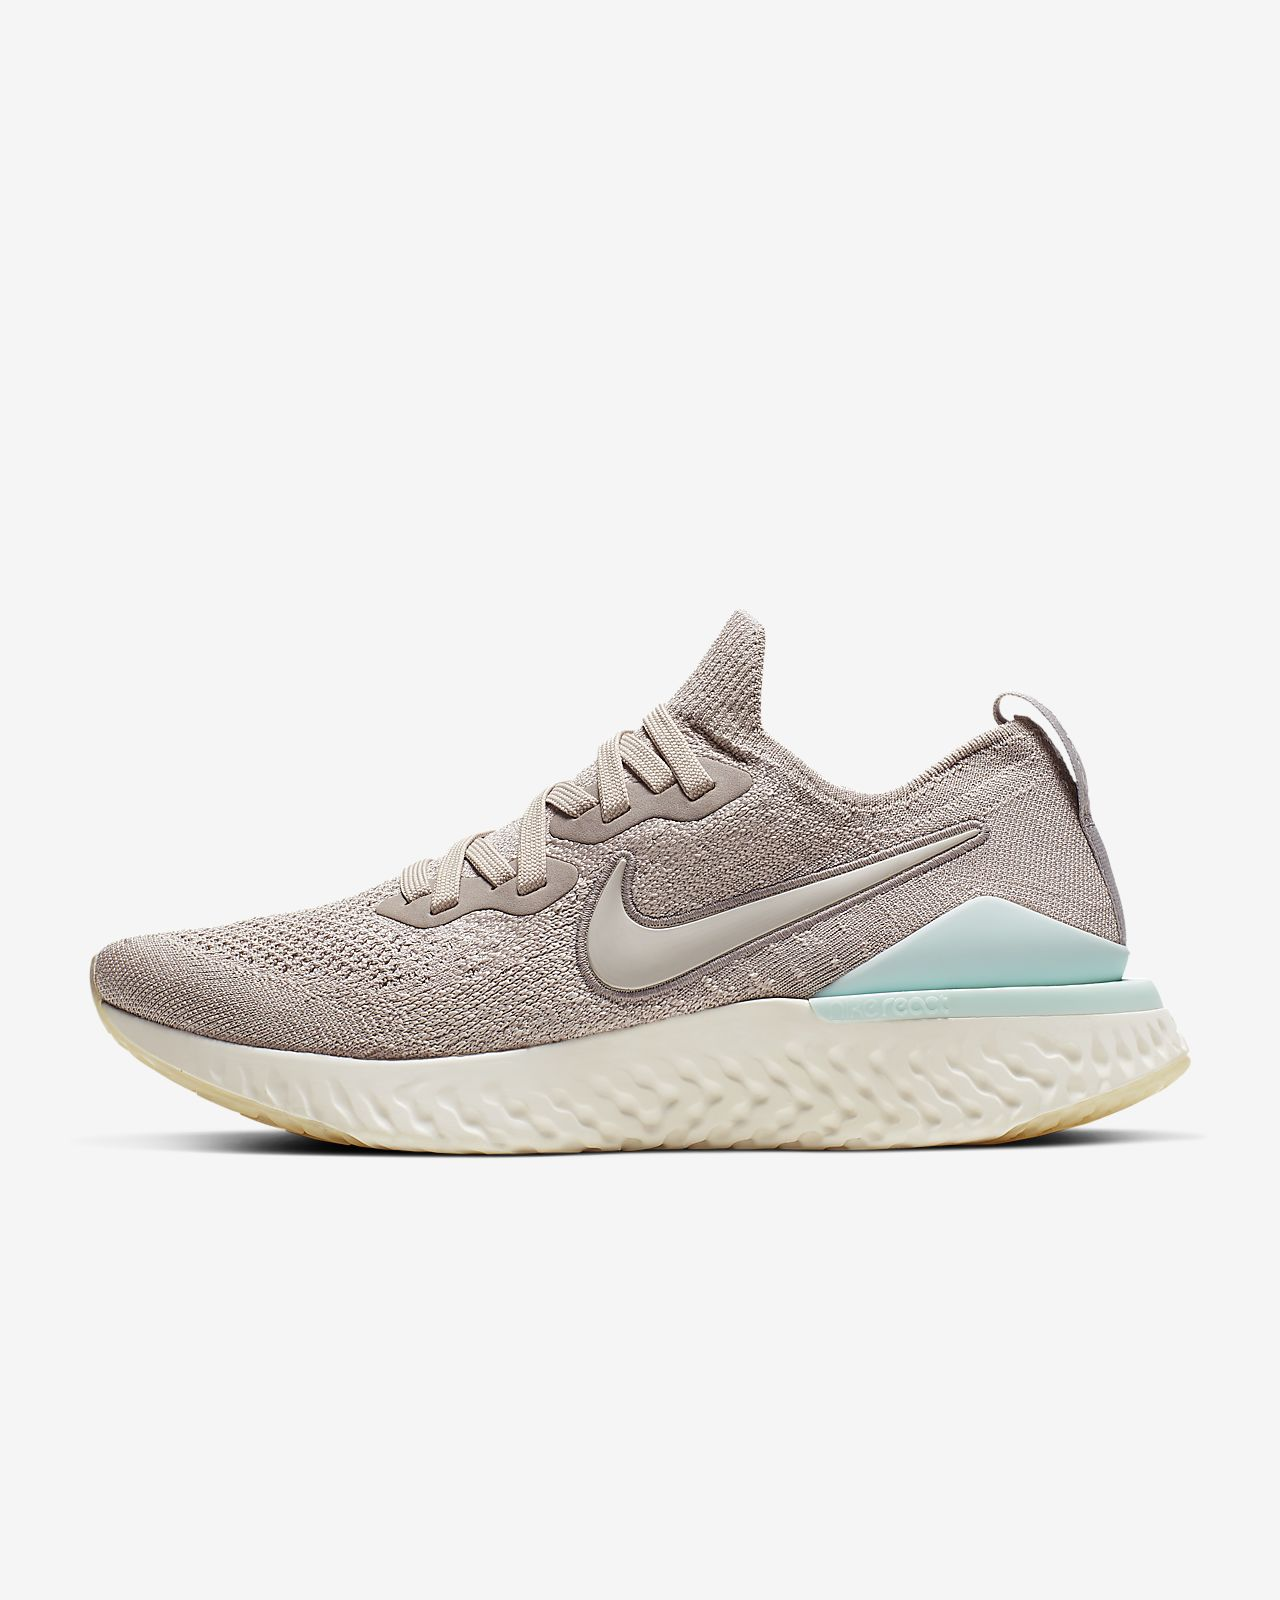 9ba689a121 Nike Epic React Flyknit 2 Women's Running Shoe. Nike.com IN